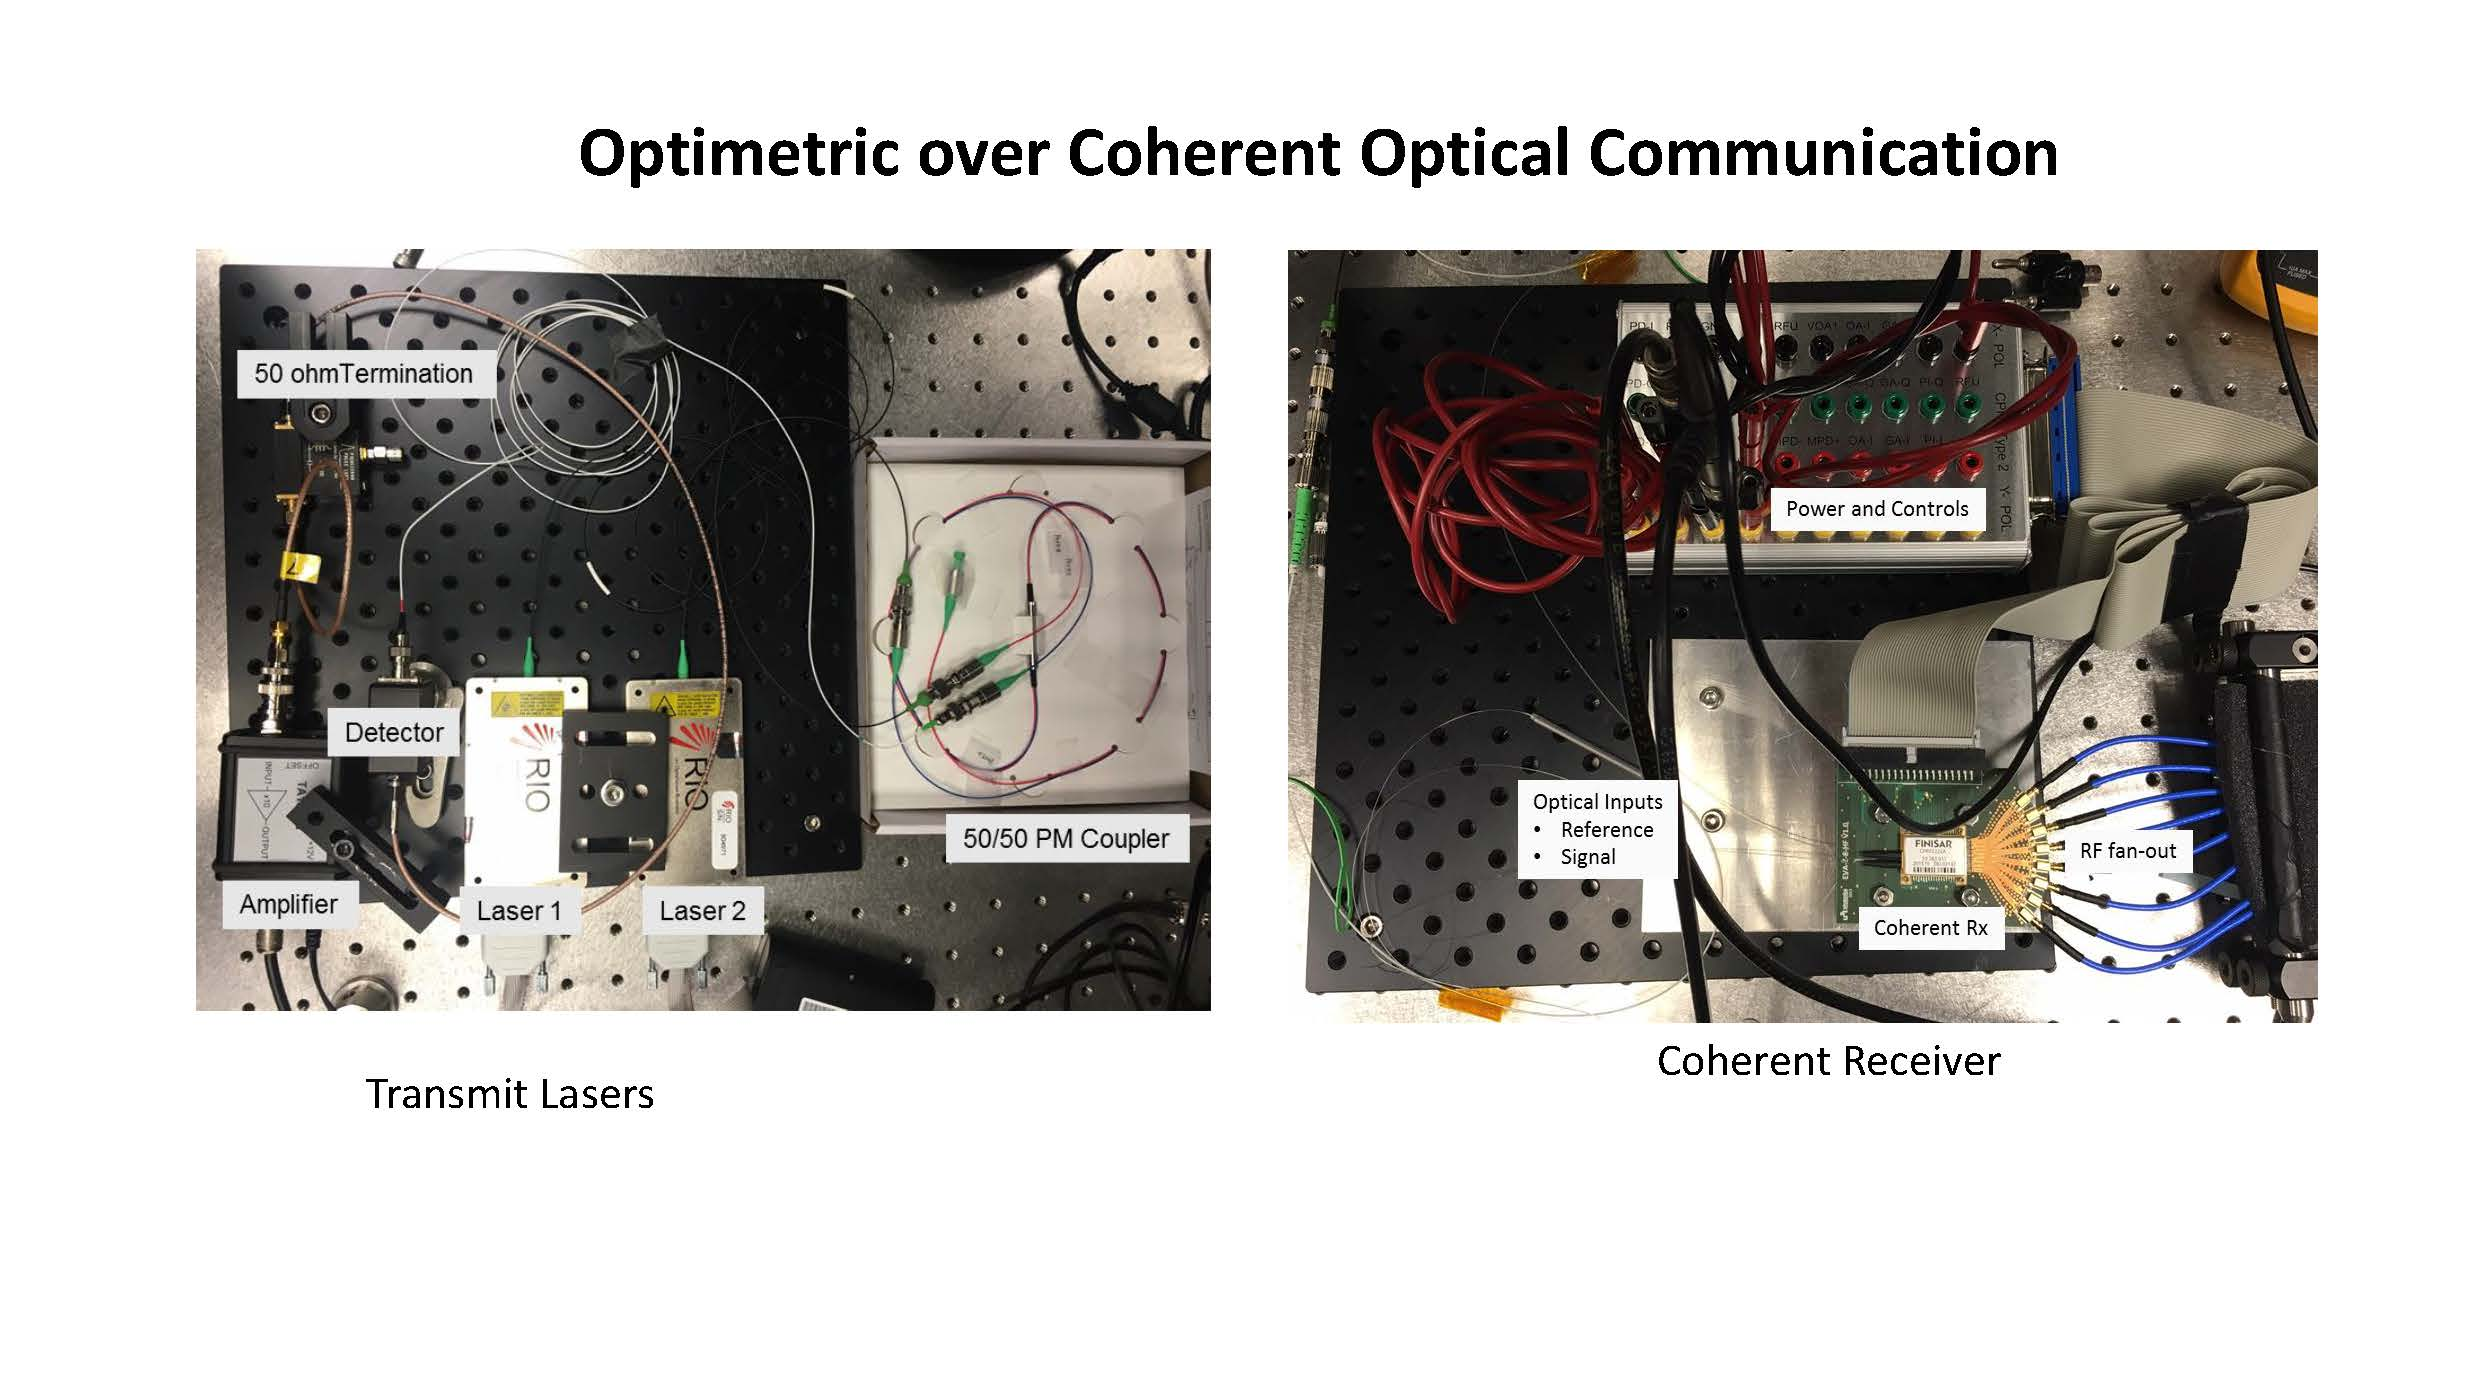 Optimetric over Coherent Optical Communication